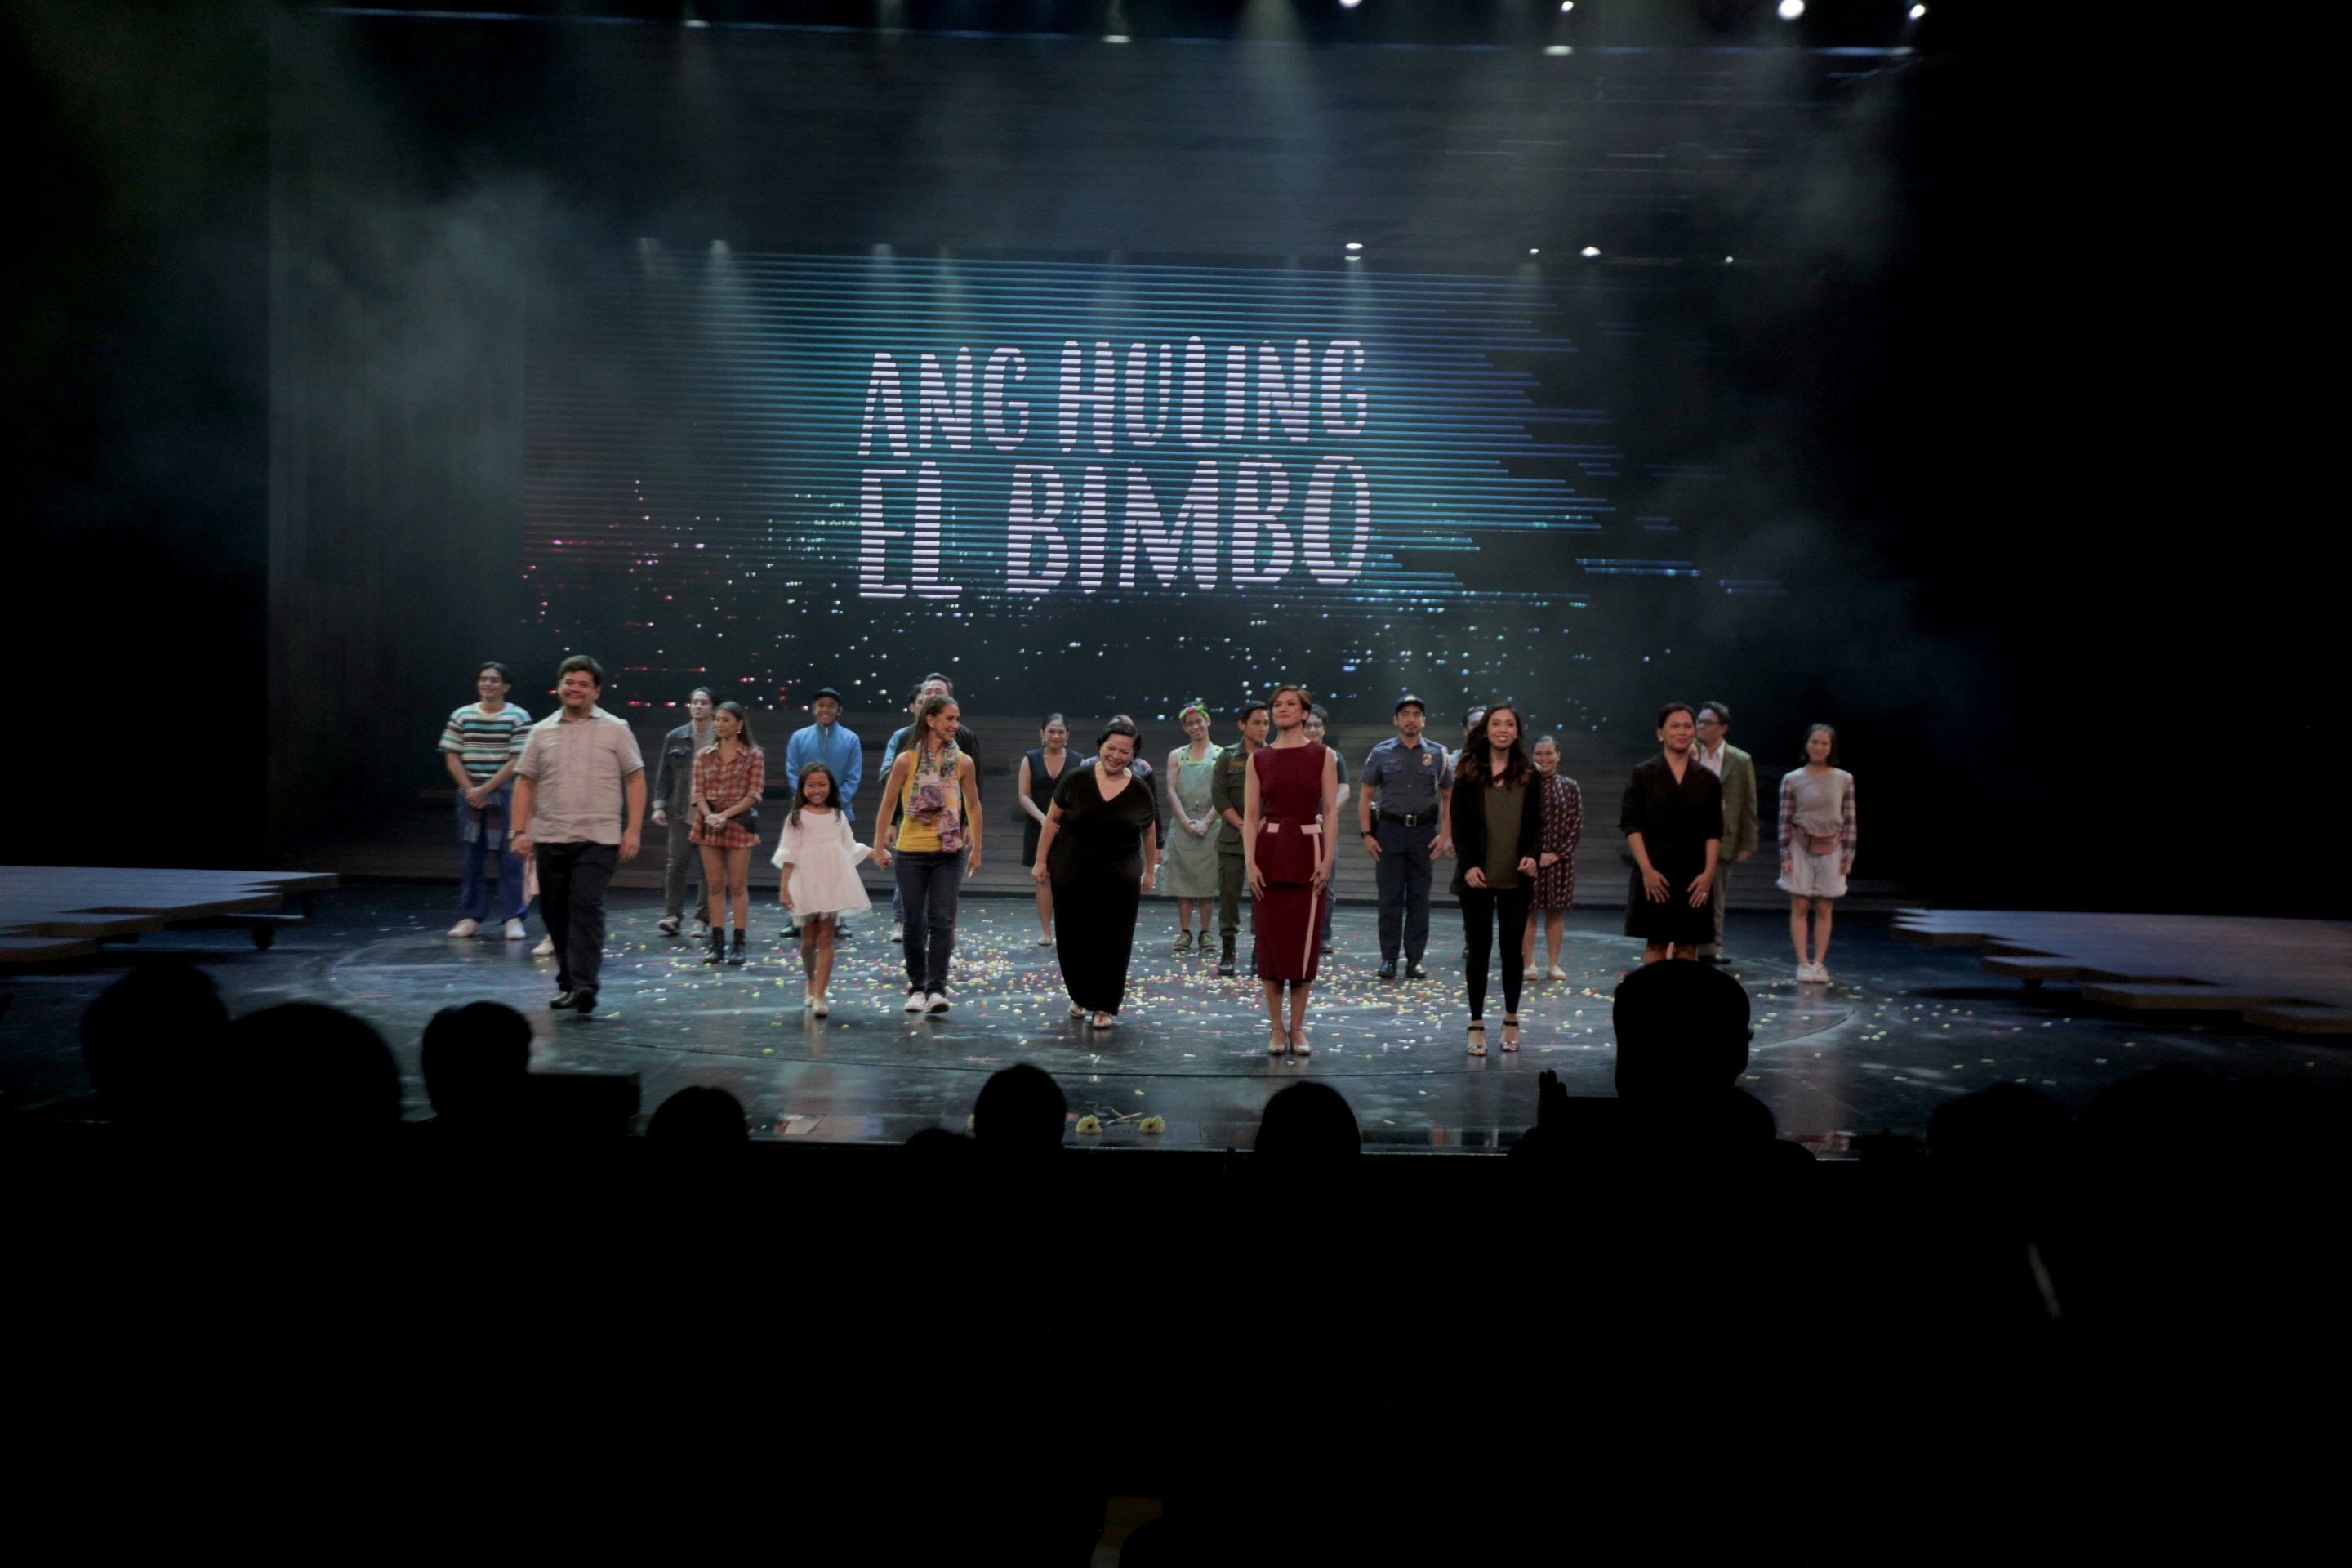 """Ang """"Huling El Bimbo"""" is a traitor worth knowing 